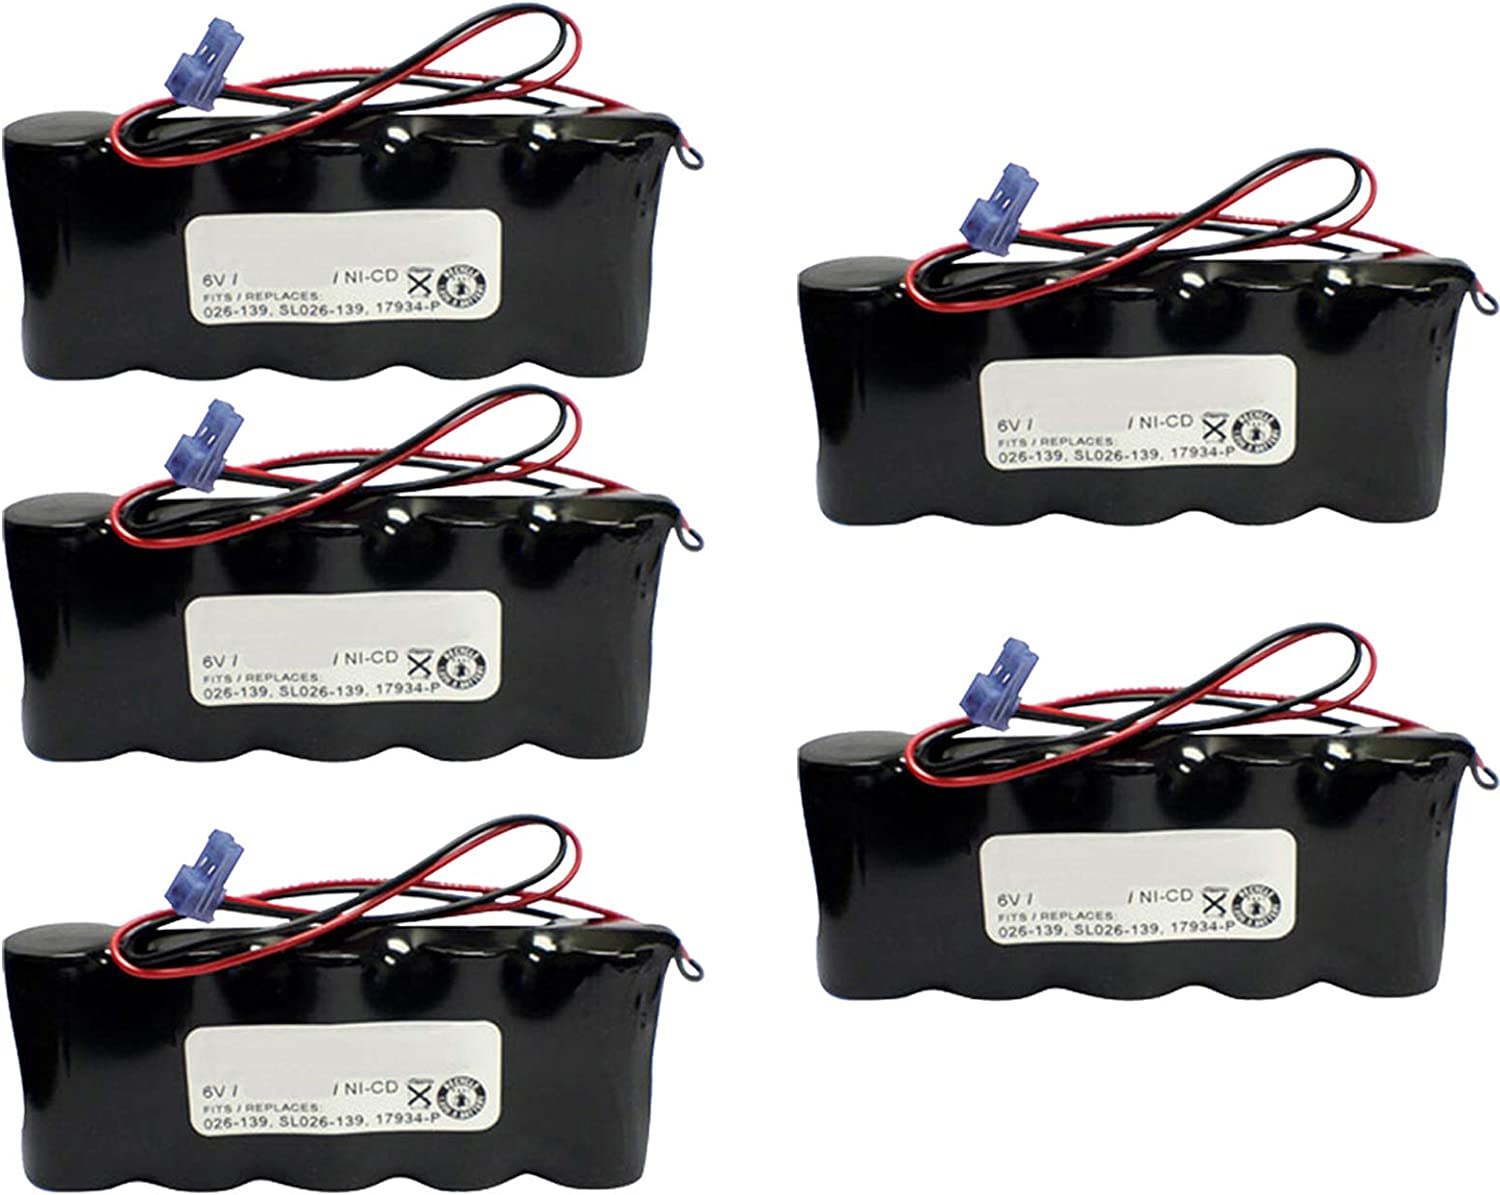 (5-Pack) Emergency/Exit Lighting Battery Fits & Replaces Sure-Lites 026-139 N30AF004A Teig T26000139 Beghelli 17934-P Interstate ANIC0636 Moltech N30AF004A Powersonic 26139 Powersonic A1314610 71C1mf8j-MLSL1500_